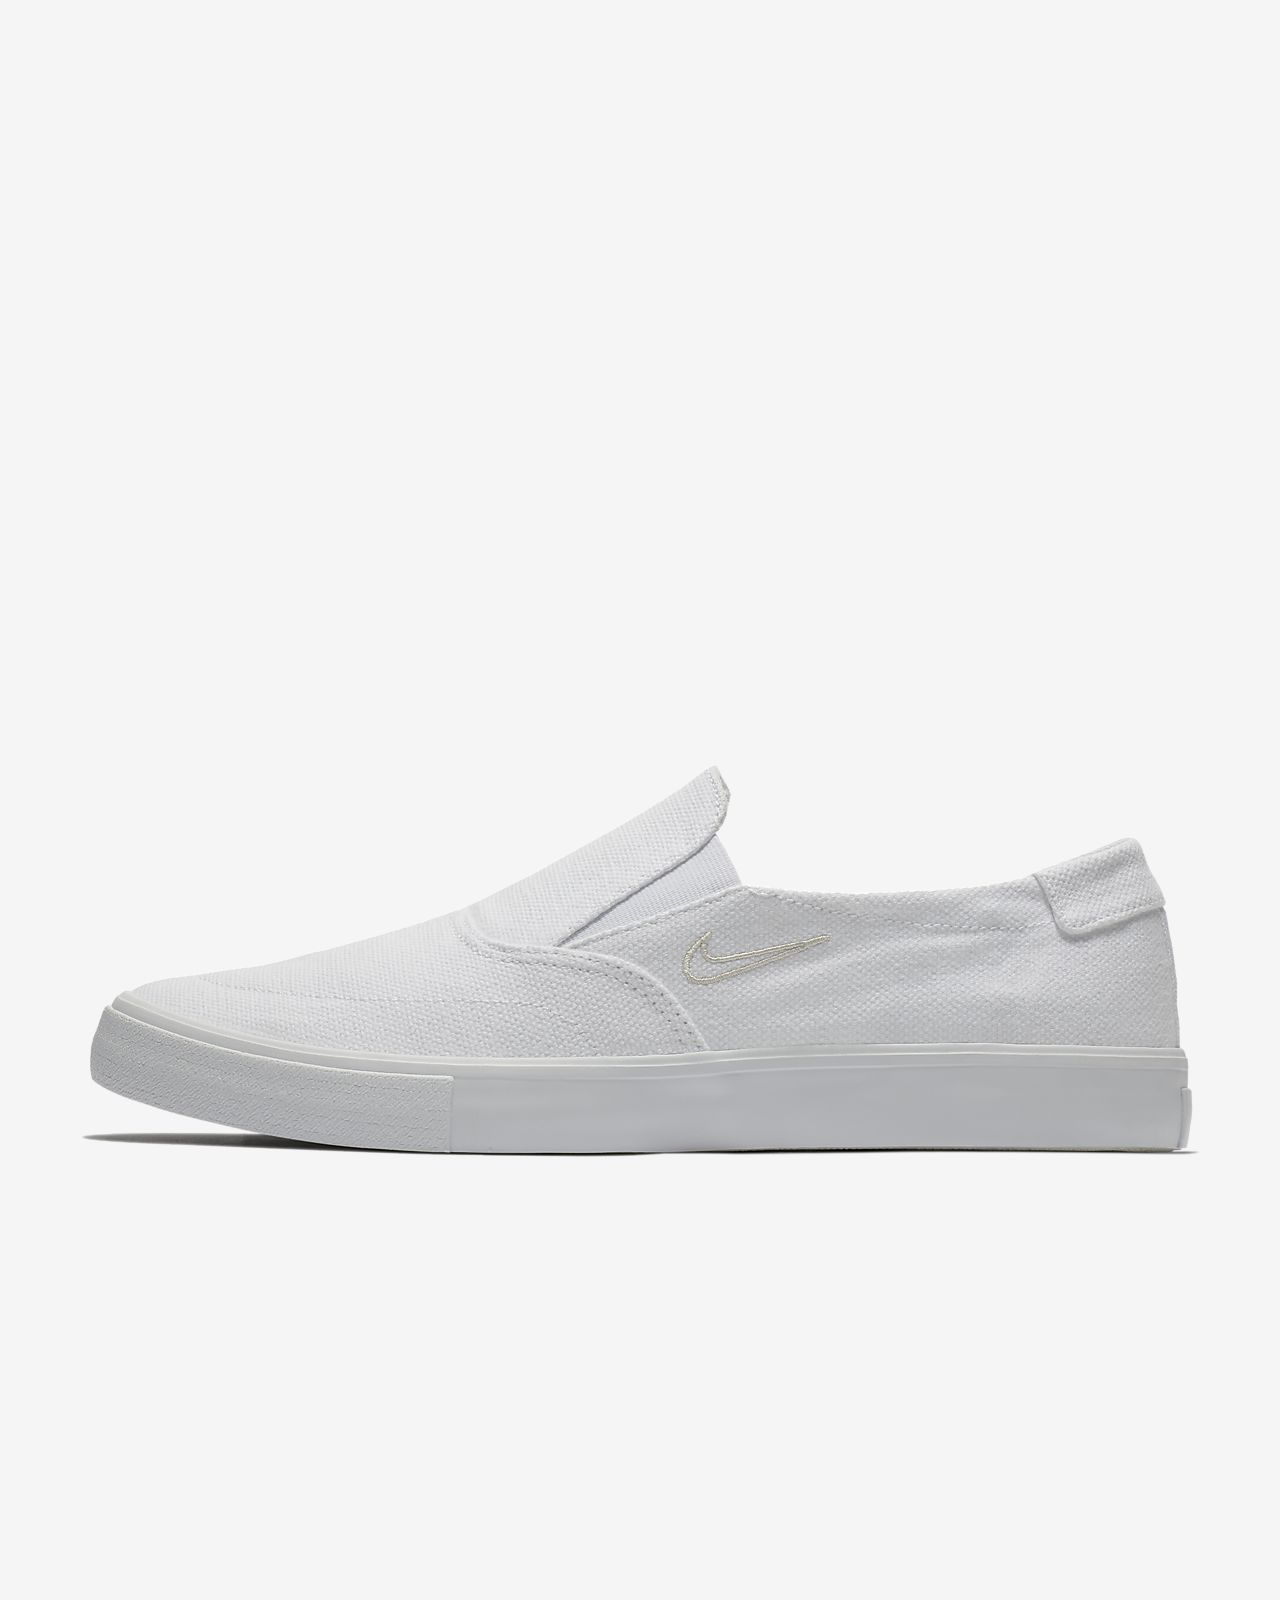 new style ab5af d4dd7 ... Nike SB Portmore II Solarsoft Slip-on Men s Skateboarding Shoe